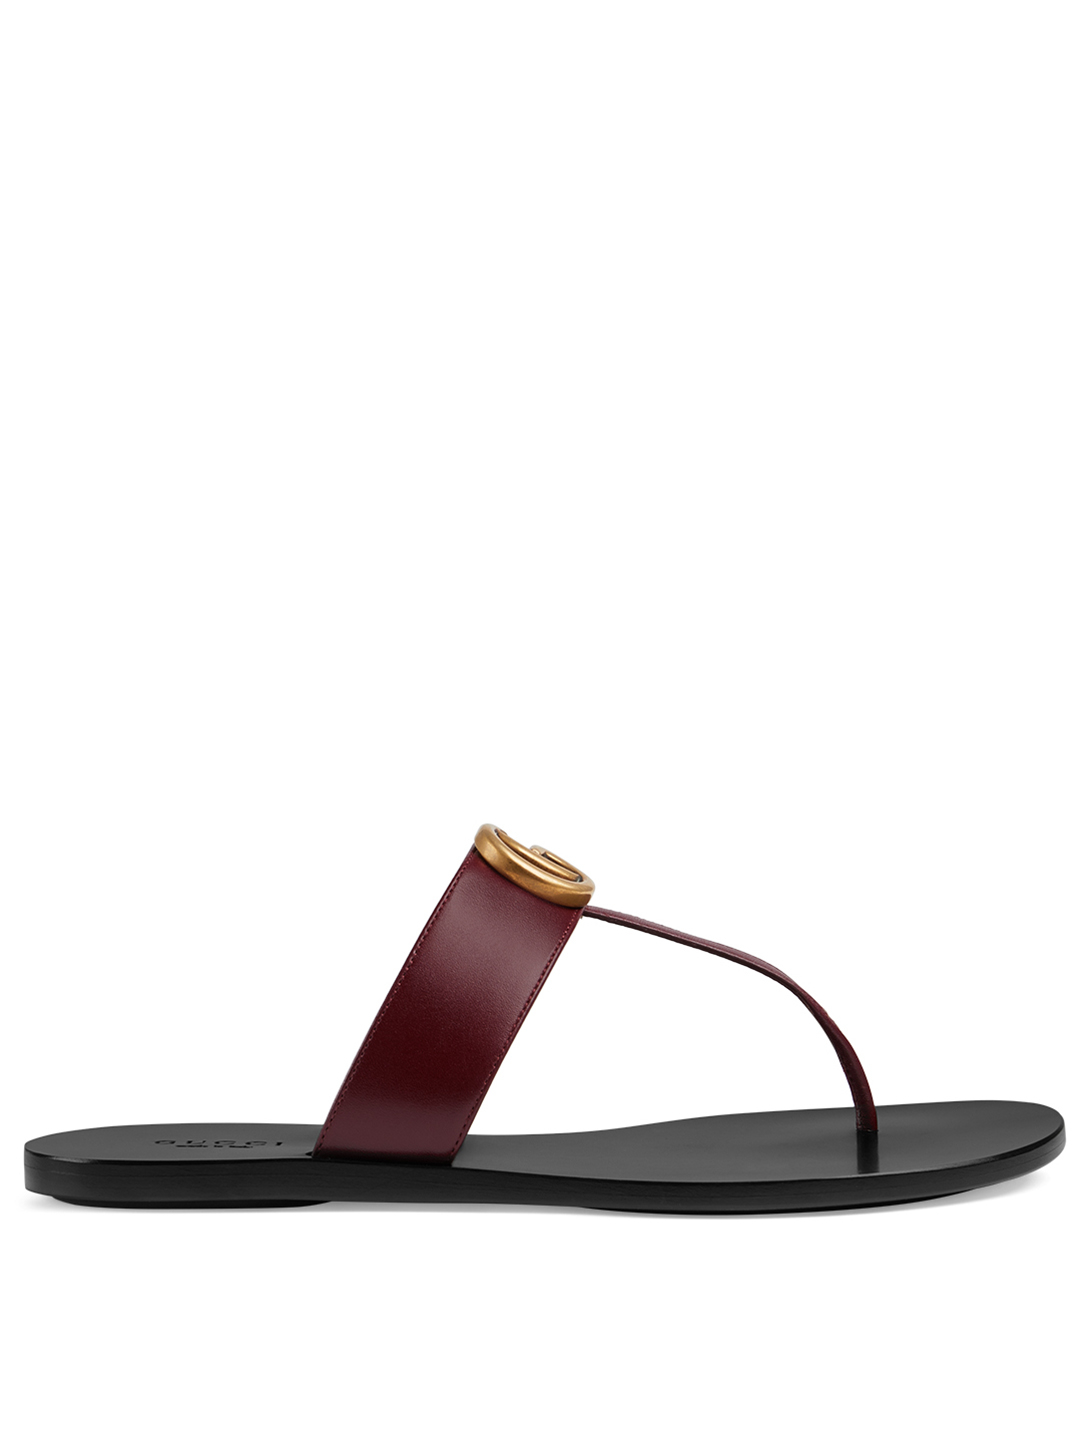 5a3a93abe GUCCI Marmont Leather Thong Sandals Designers Brown ...